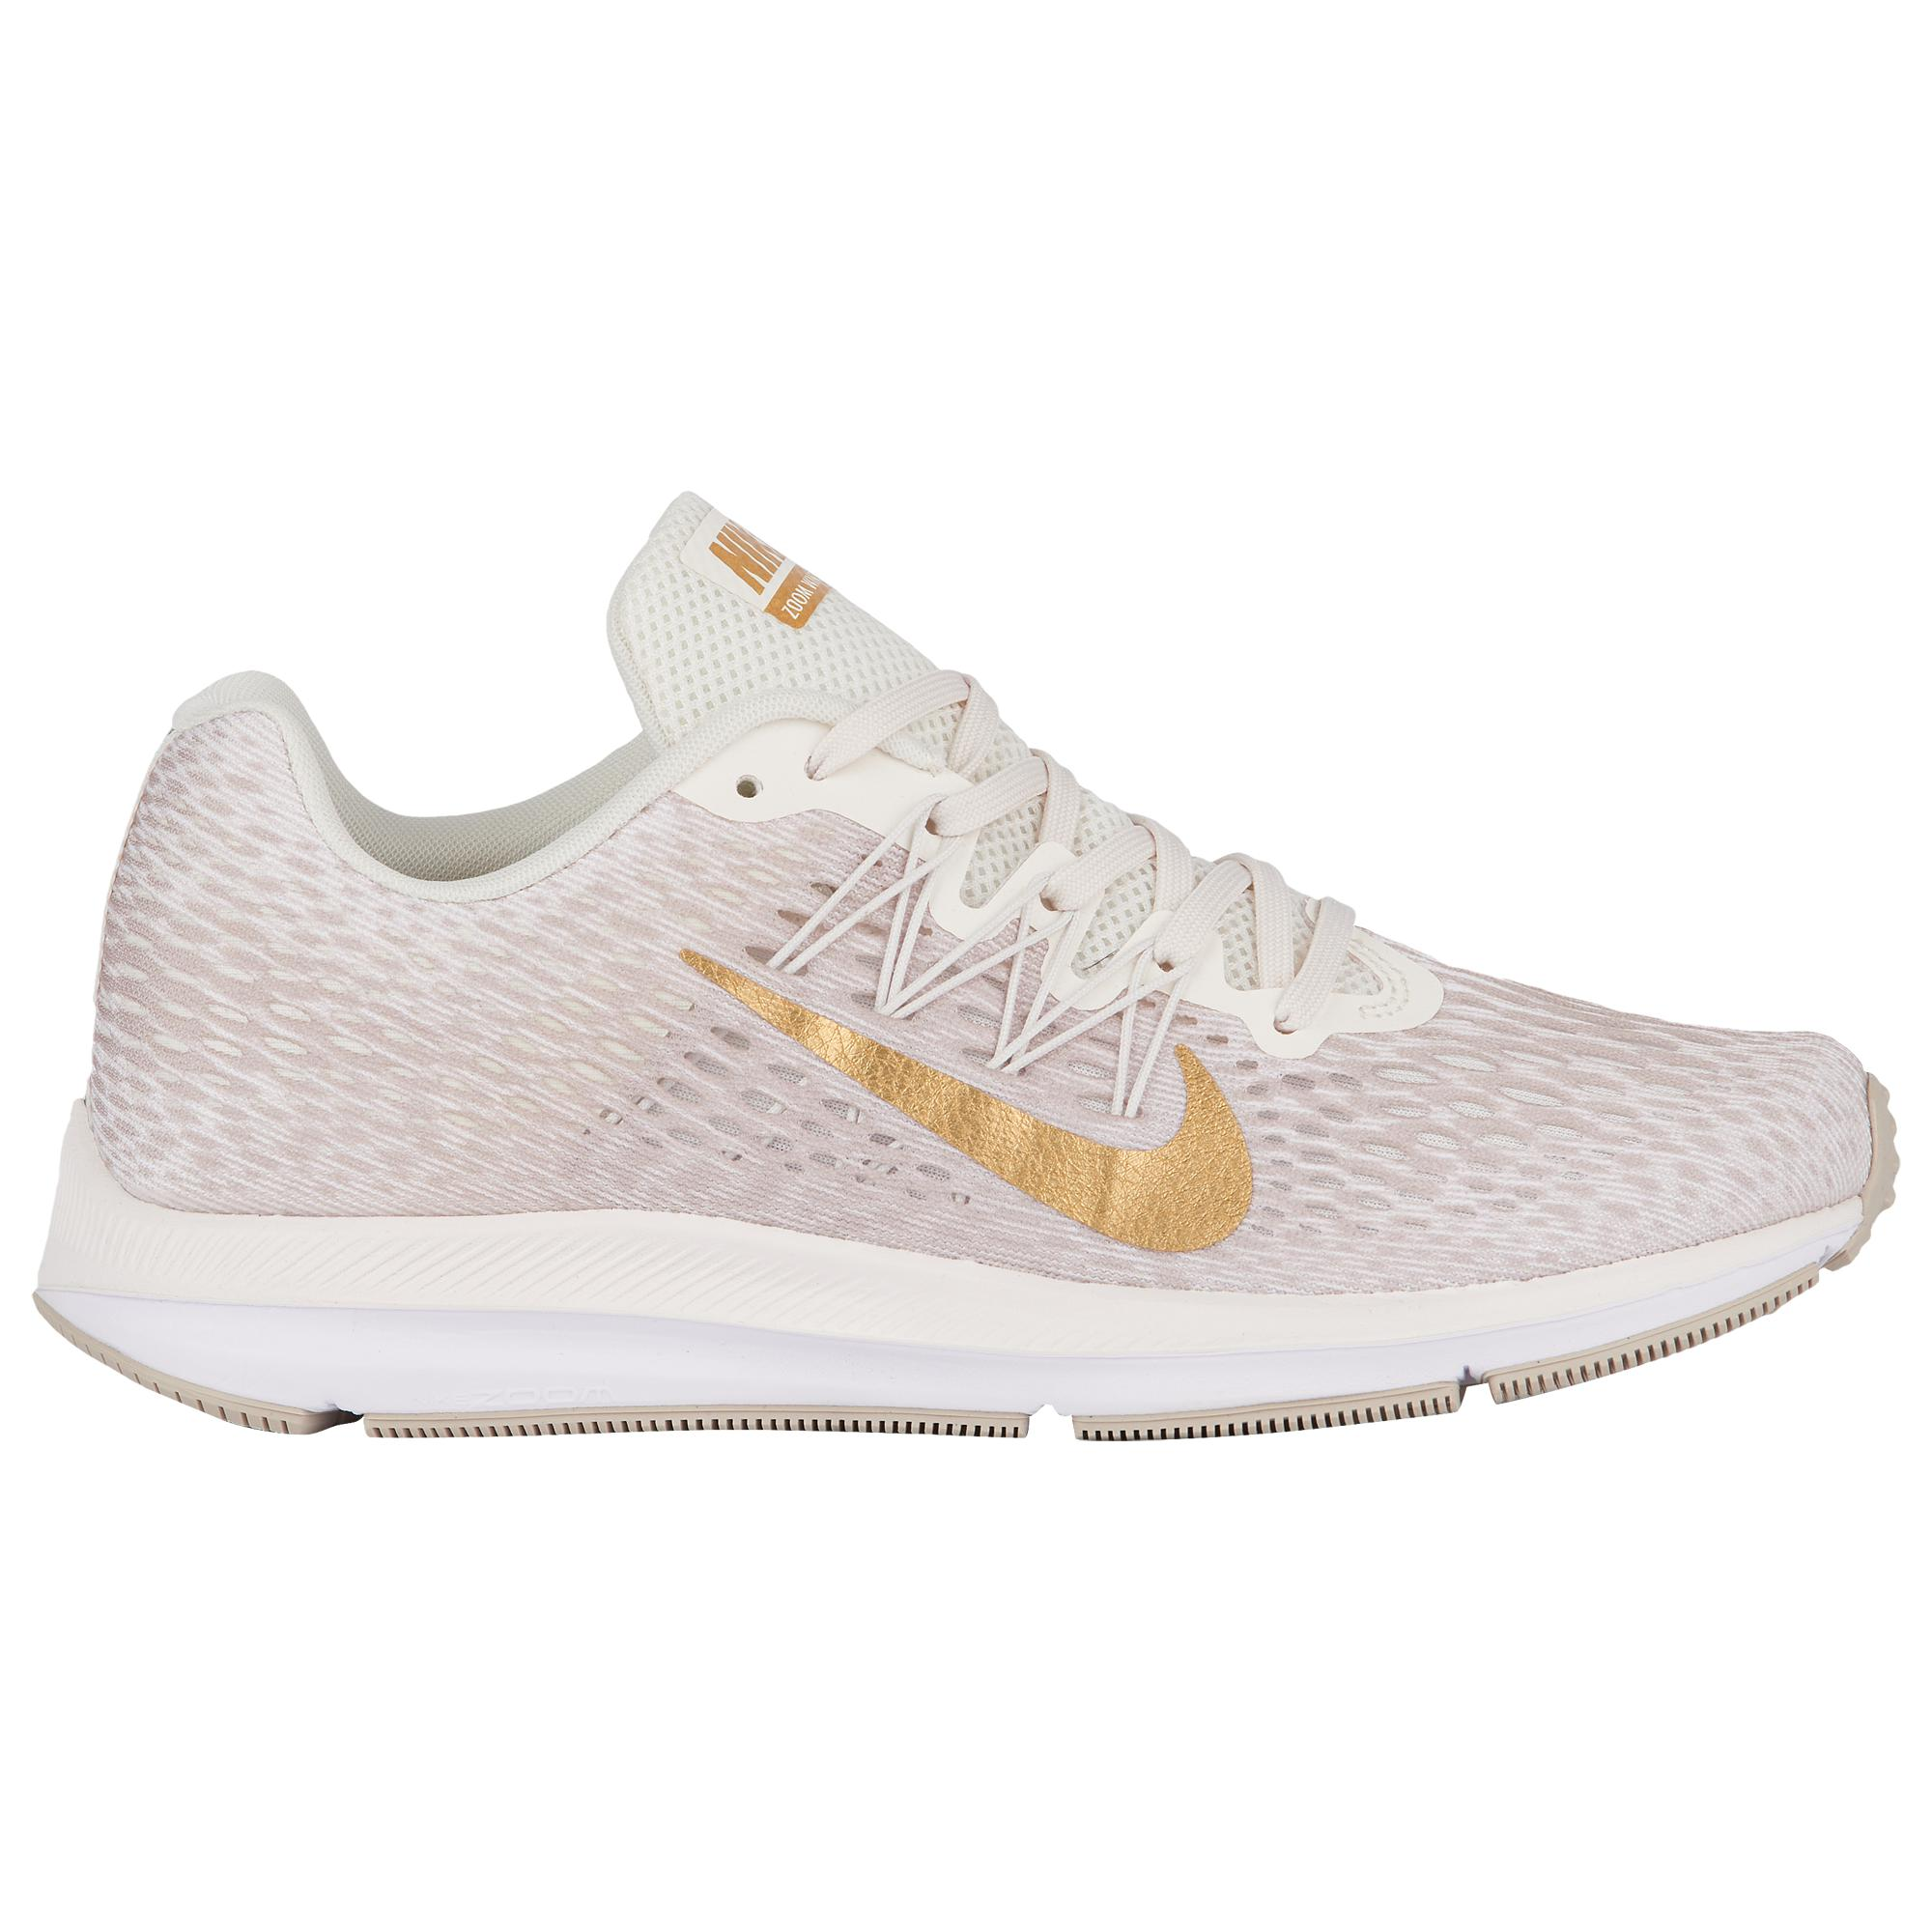 ad0bdcf434bb4 Lyst - Nike Zoom Winflo 5 in White